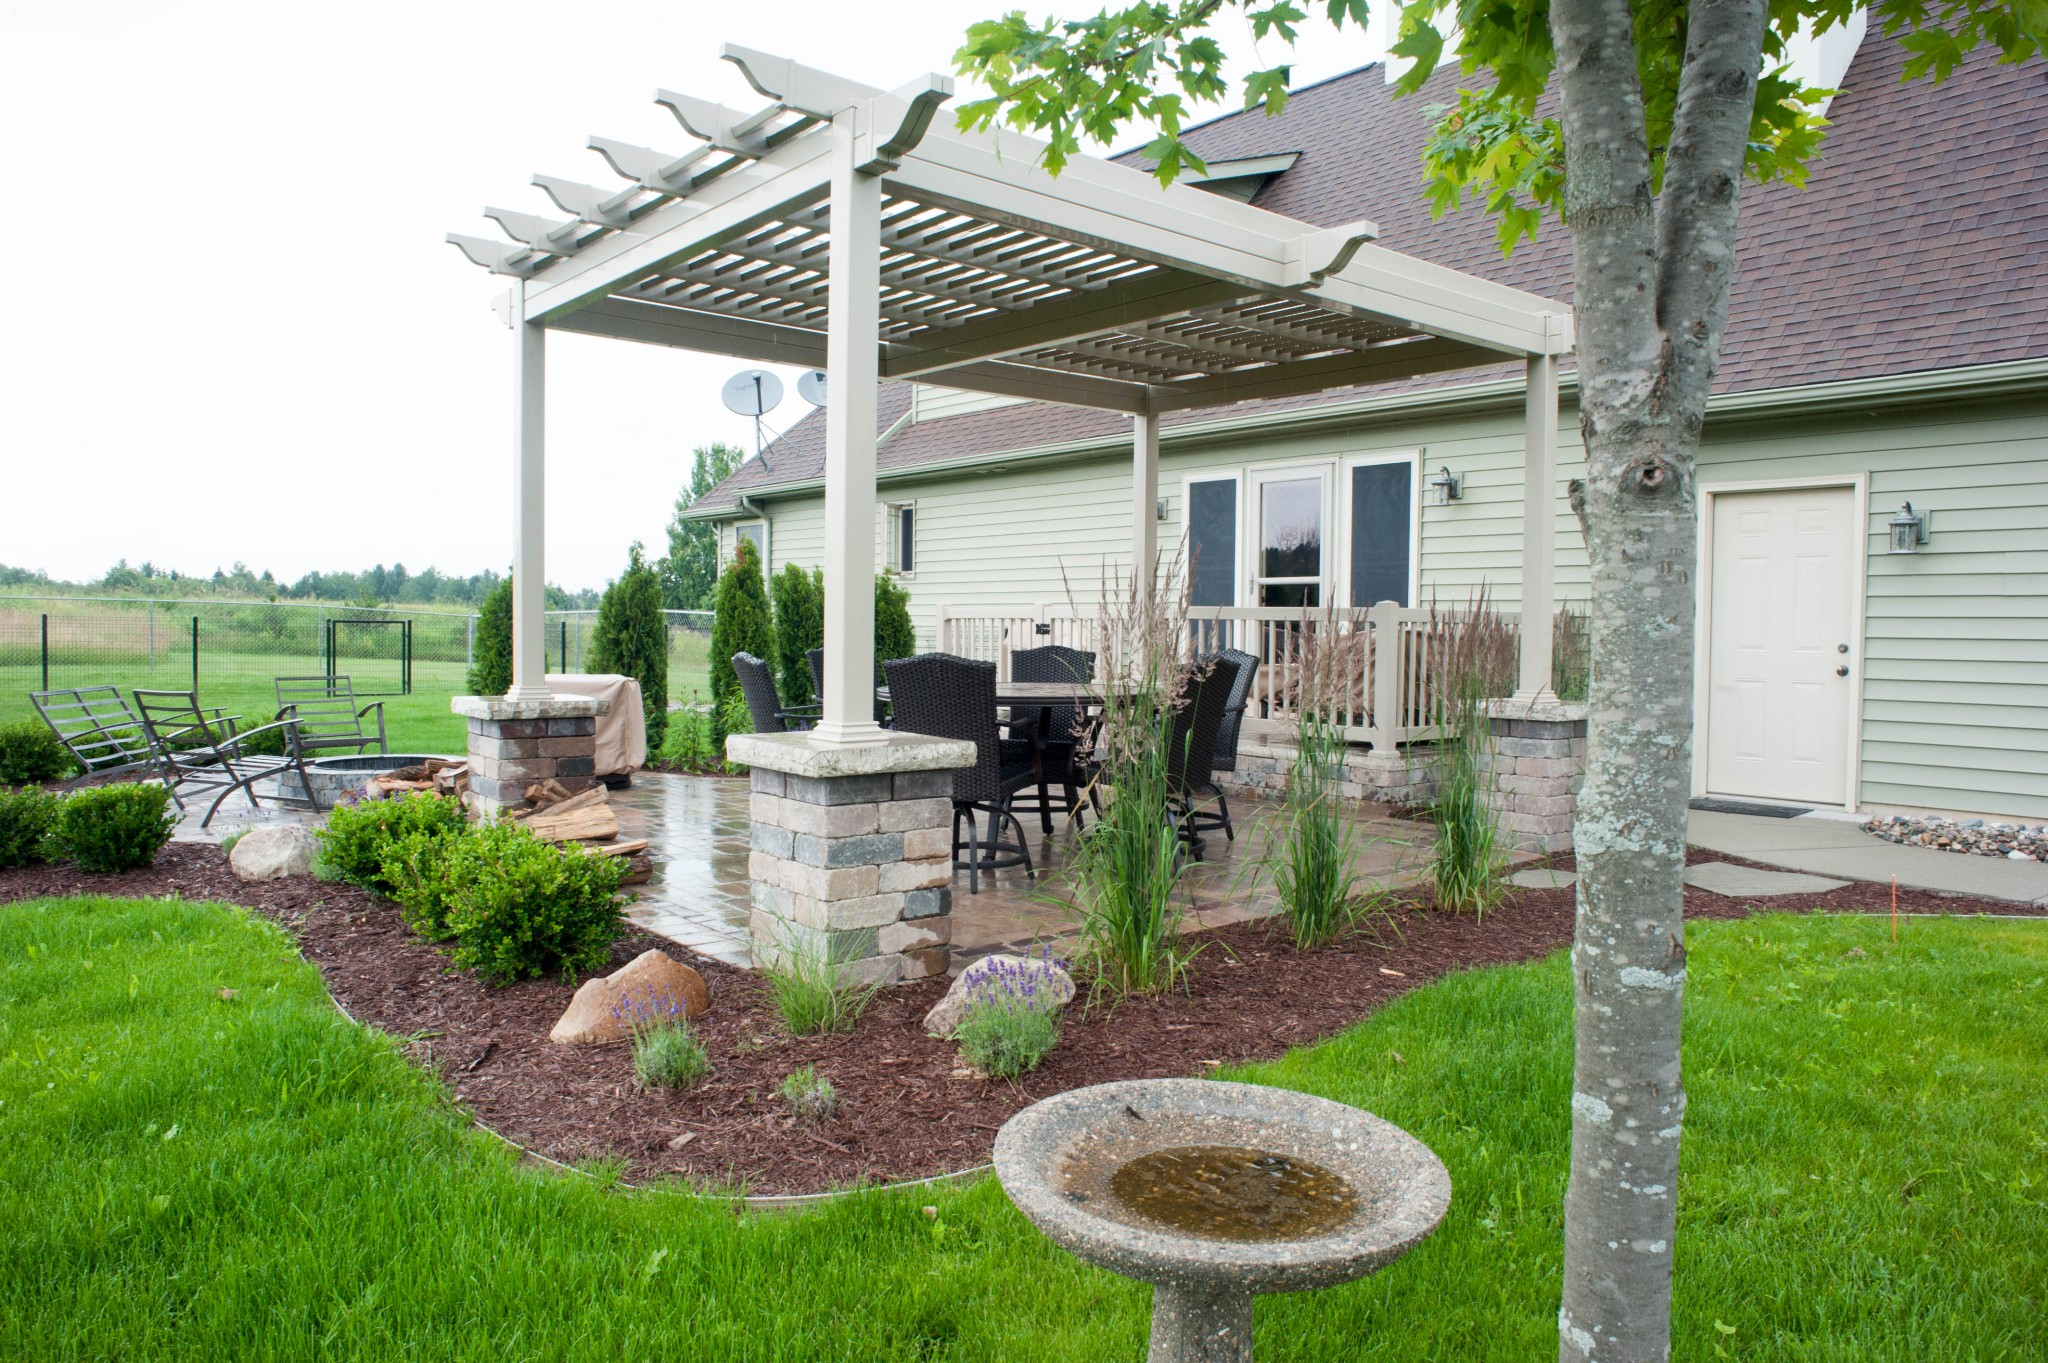 pergola over paver patio with fire pit